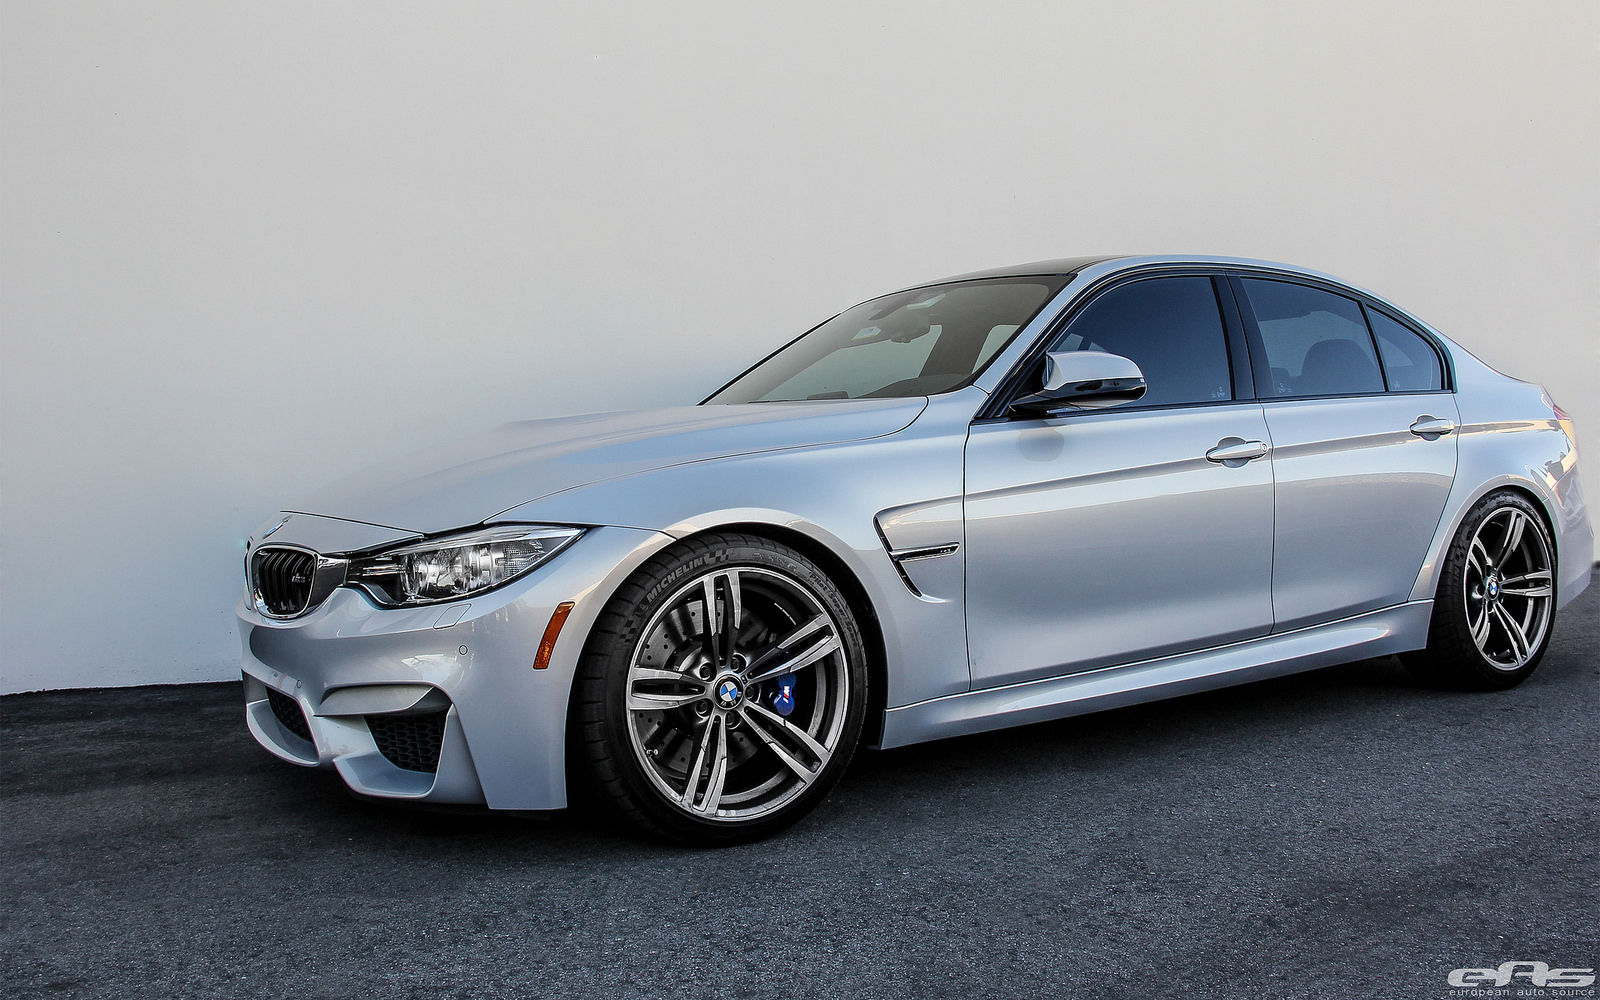 Moonstone Metallic Is One Of The Best Colors For The New Bmw M3